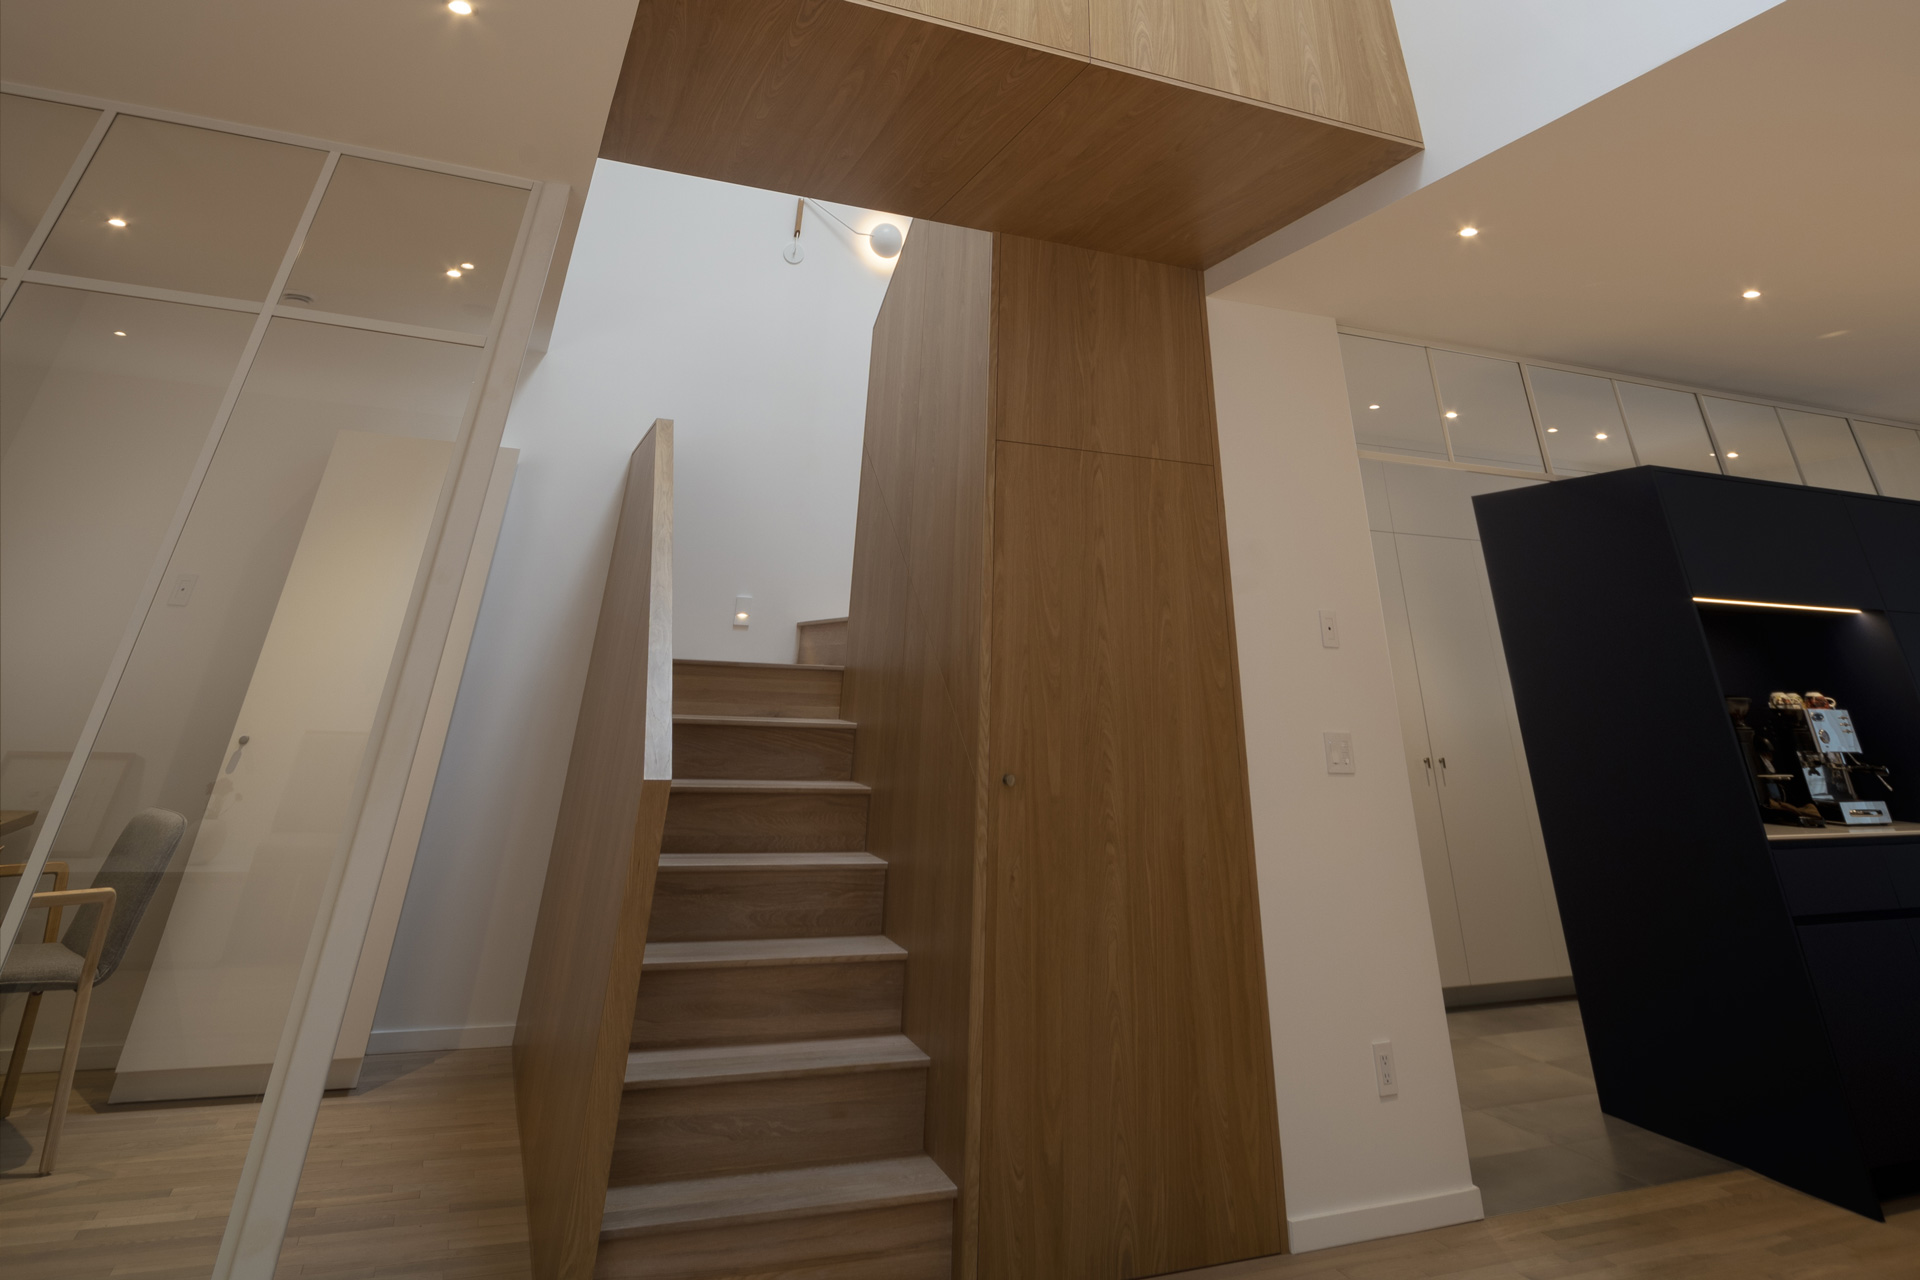 Construction and renovation of a bright wooden staircase